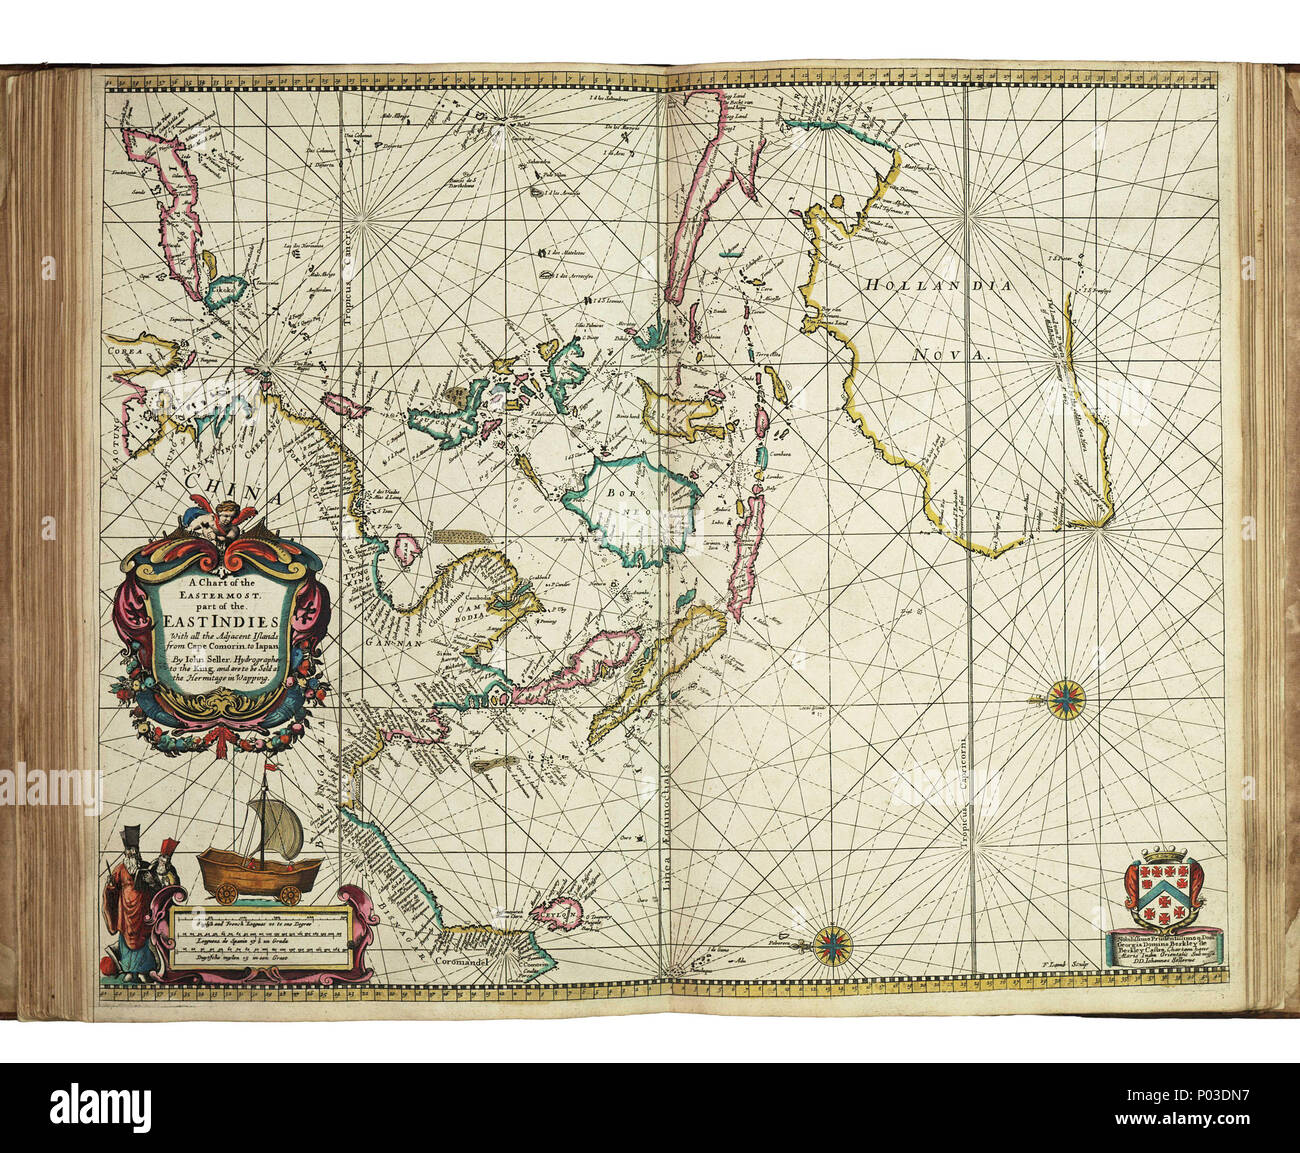 .  English: A chart of the easternmost part of the East Indies with all the adjacent islands from Cape Comorin to JapanBound sheet. Hand col engr. Scale: [ca. 1:17 000 000 (bar)]. Cartographic Note: North at 270 degrees. Borders graduated for latitude. Plane chart. Bar scales in English and French leagues, Spanish leagues and Dutch miles. Additional Places: Indian Ocean, Australia. Contents Note: Title decorated with a Chinese land yacht. Chart dedicated to Lord George Berkeley, privy councillor, member of the council of trade and the East India Company. Atlas maritimus: or the sea-atlas; bei - Stock Image